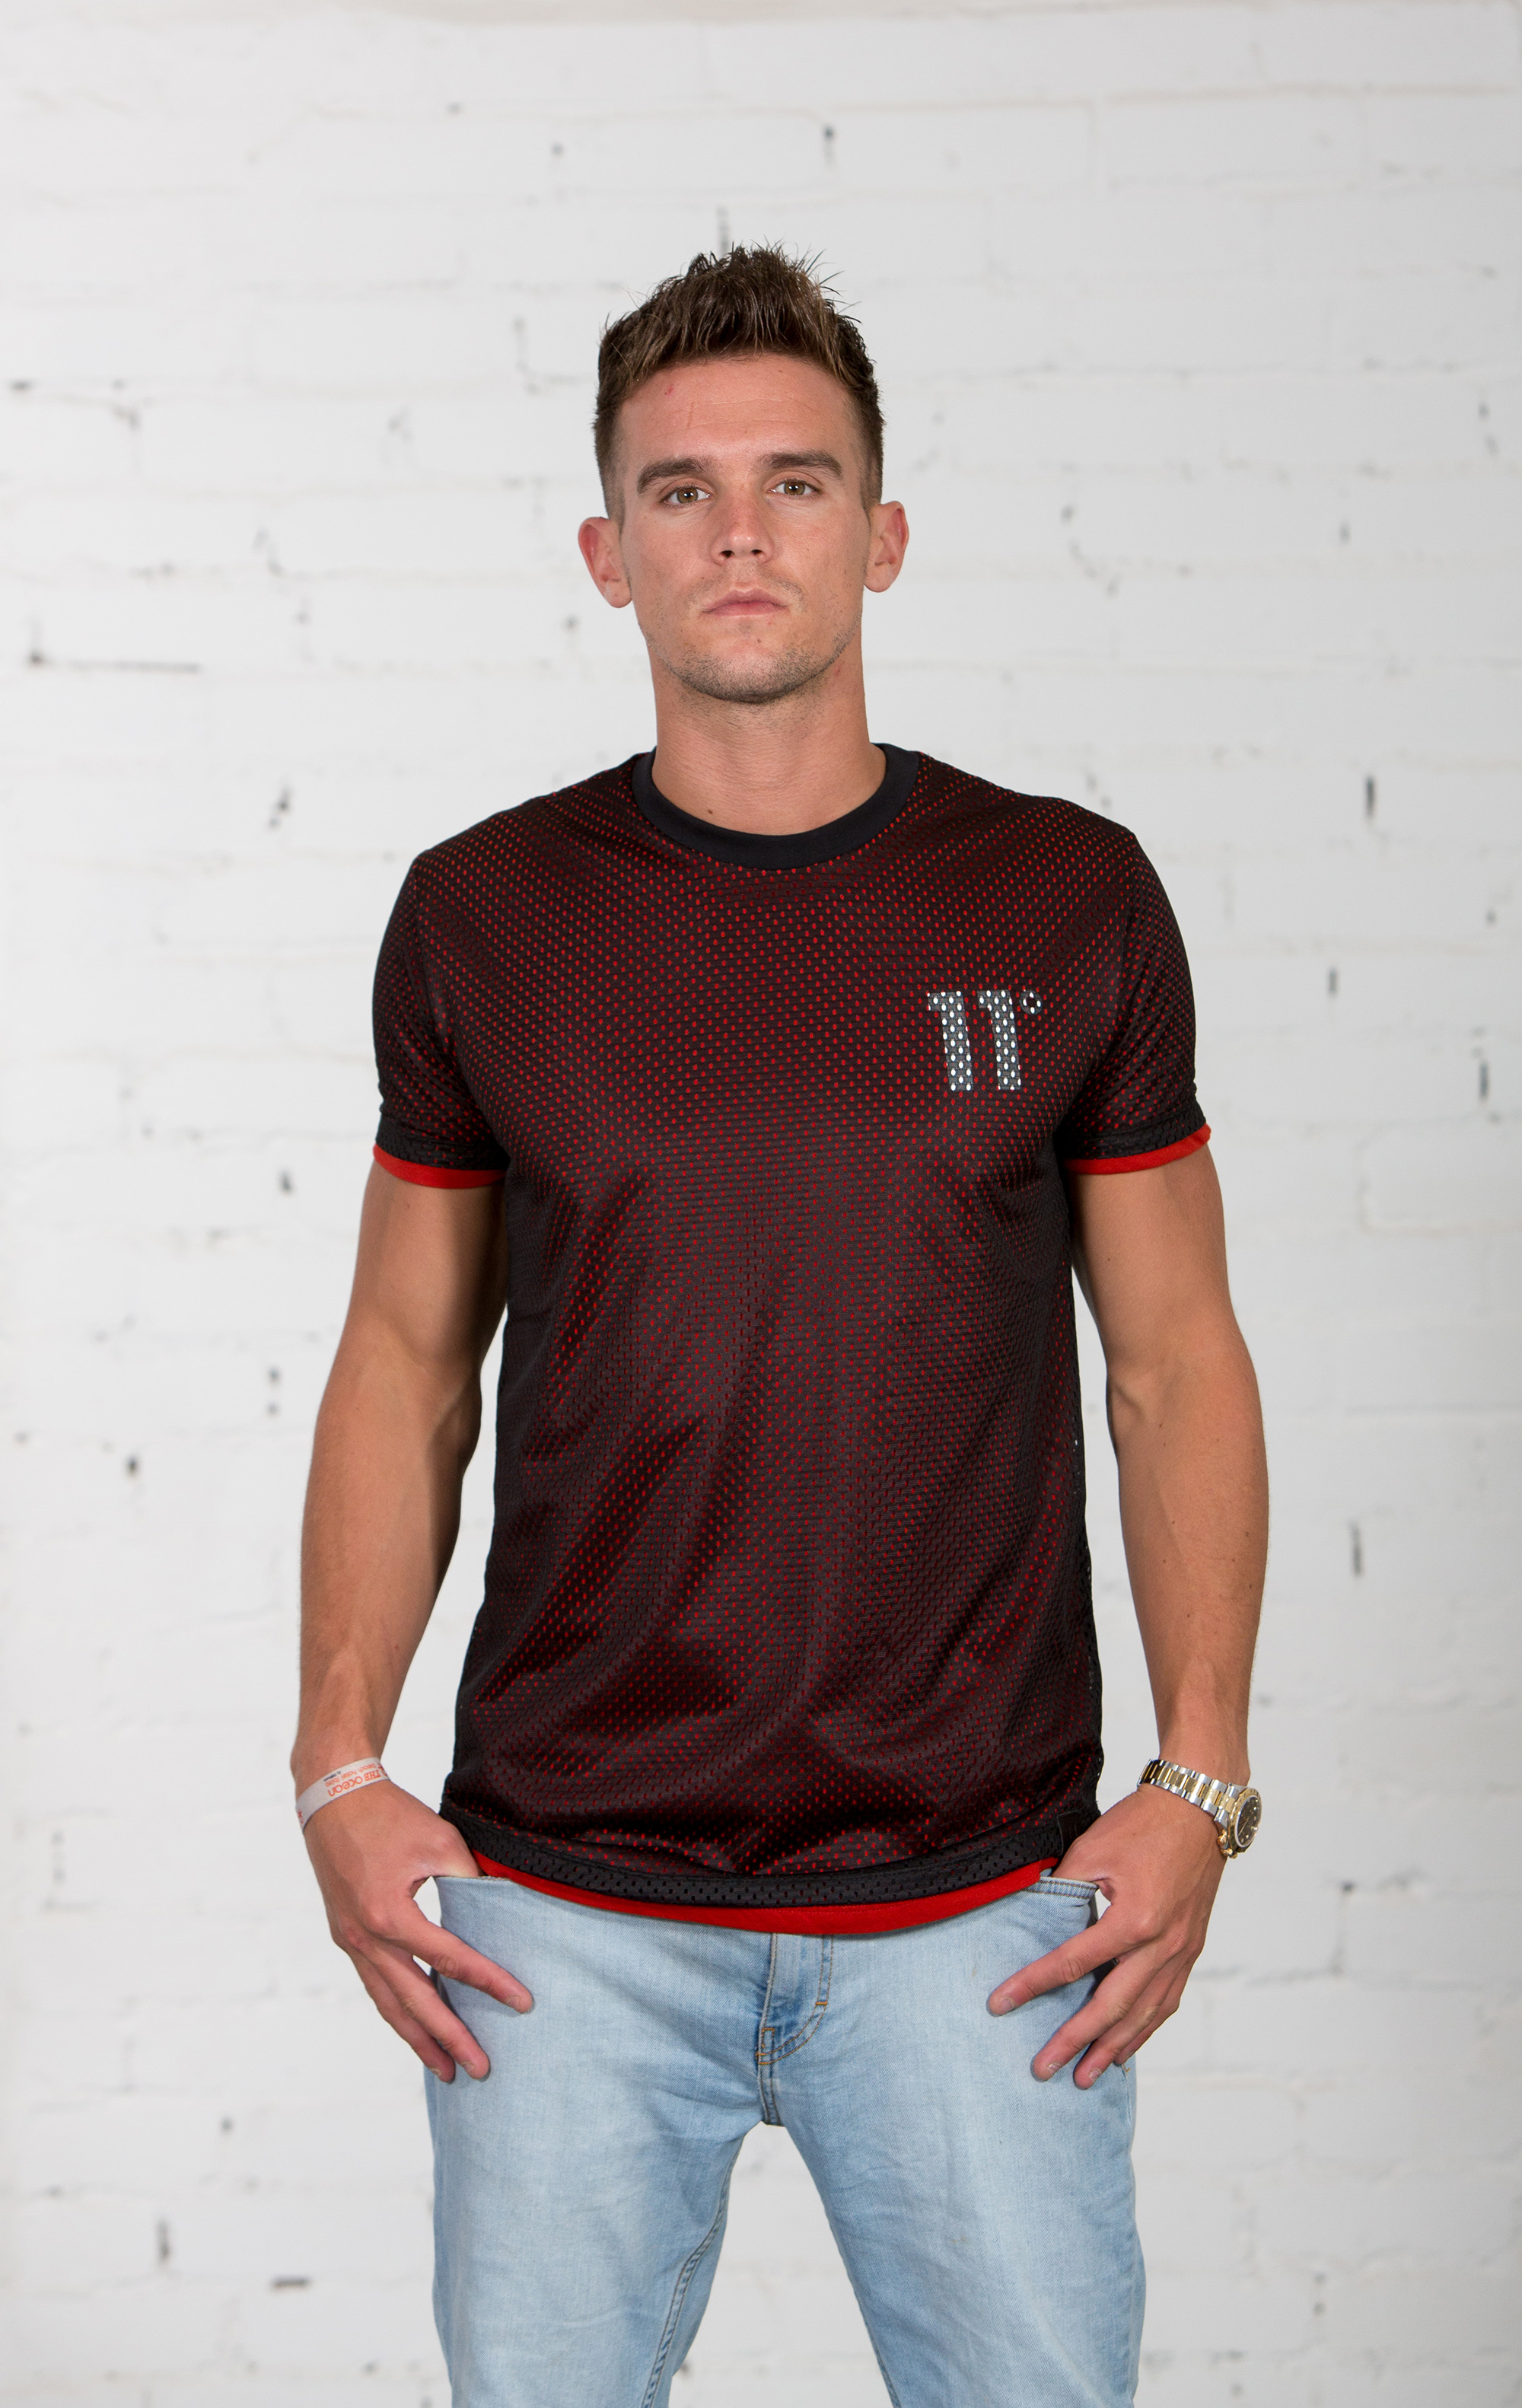 11 Degrees clothing, Gary Beadle, @GazGShore